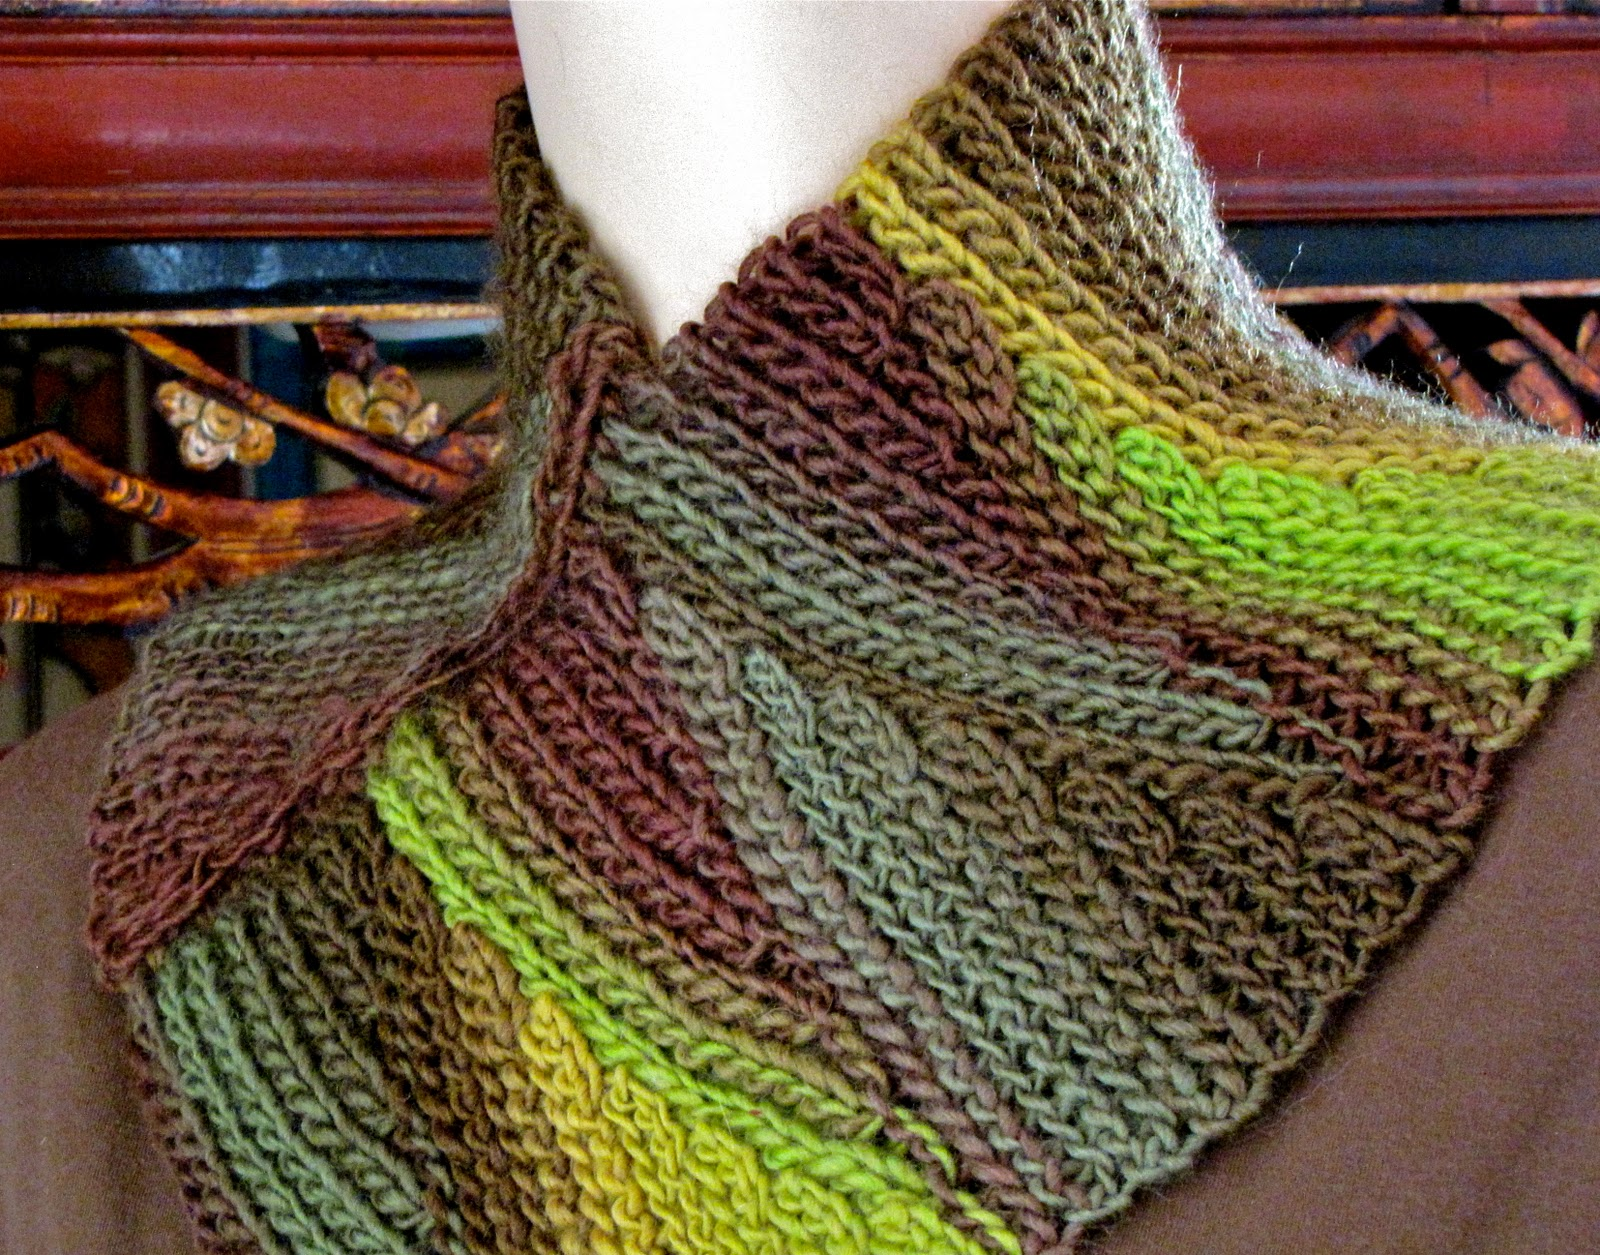 The New Crochet Cowl Scarves The Perfect Stitch For Fall